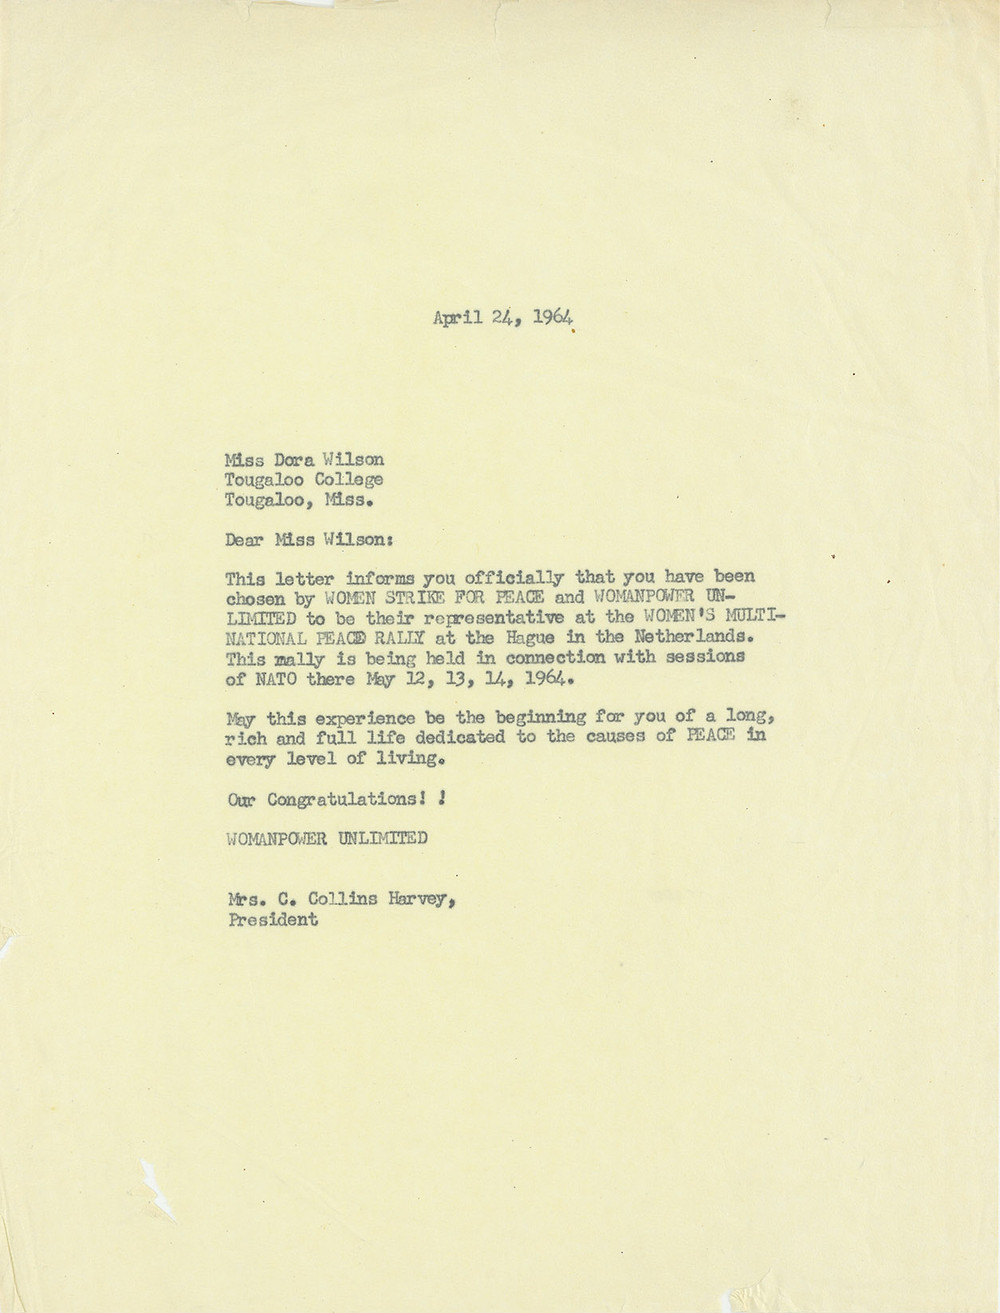 Letter from Clarie Collins Harvey to Dora Wilson, April 24, 1964